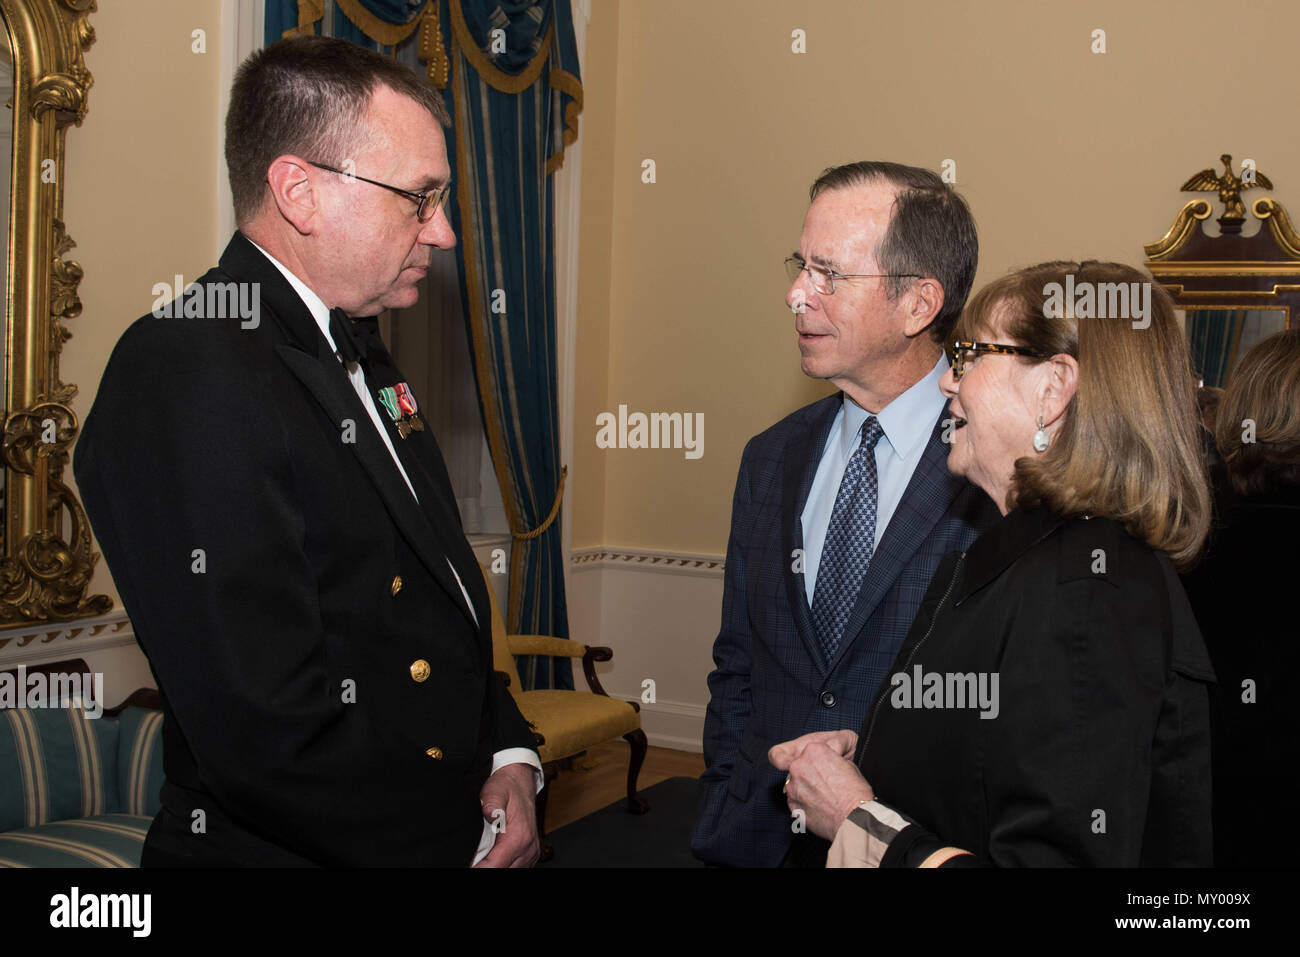 161218-N-HG258-027 WASHINGTON (Dec. 18, 2016) Senior Chief Petty Officer Keith Arneson, left, meets former Chairman of the Joint Chiefs of Staff, Adm. Michael Mullen and his wife, right, backstage after the Sunday afternoon Navy Band Holiday Concert held at DAR Constitiution Hall in Washington, D.C. The Navy Band hosted thousands of people from the Washington area as well as hundreds of senior Navy and government officials during its three annual holiday concerts.  (U.S. Navy photo by Senior Chief Petty Officer Stephen Hassay/Released) - Stock Image